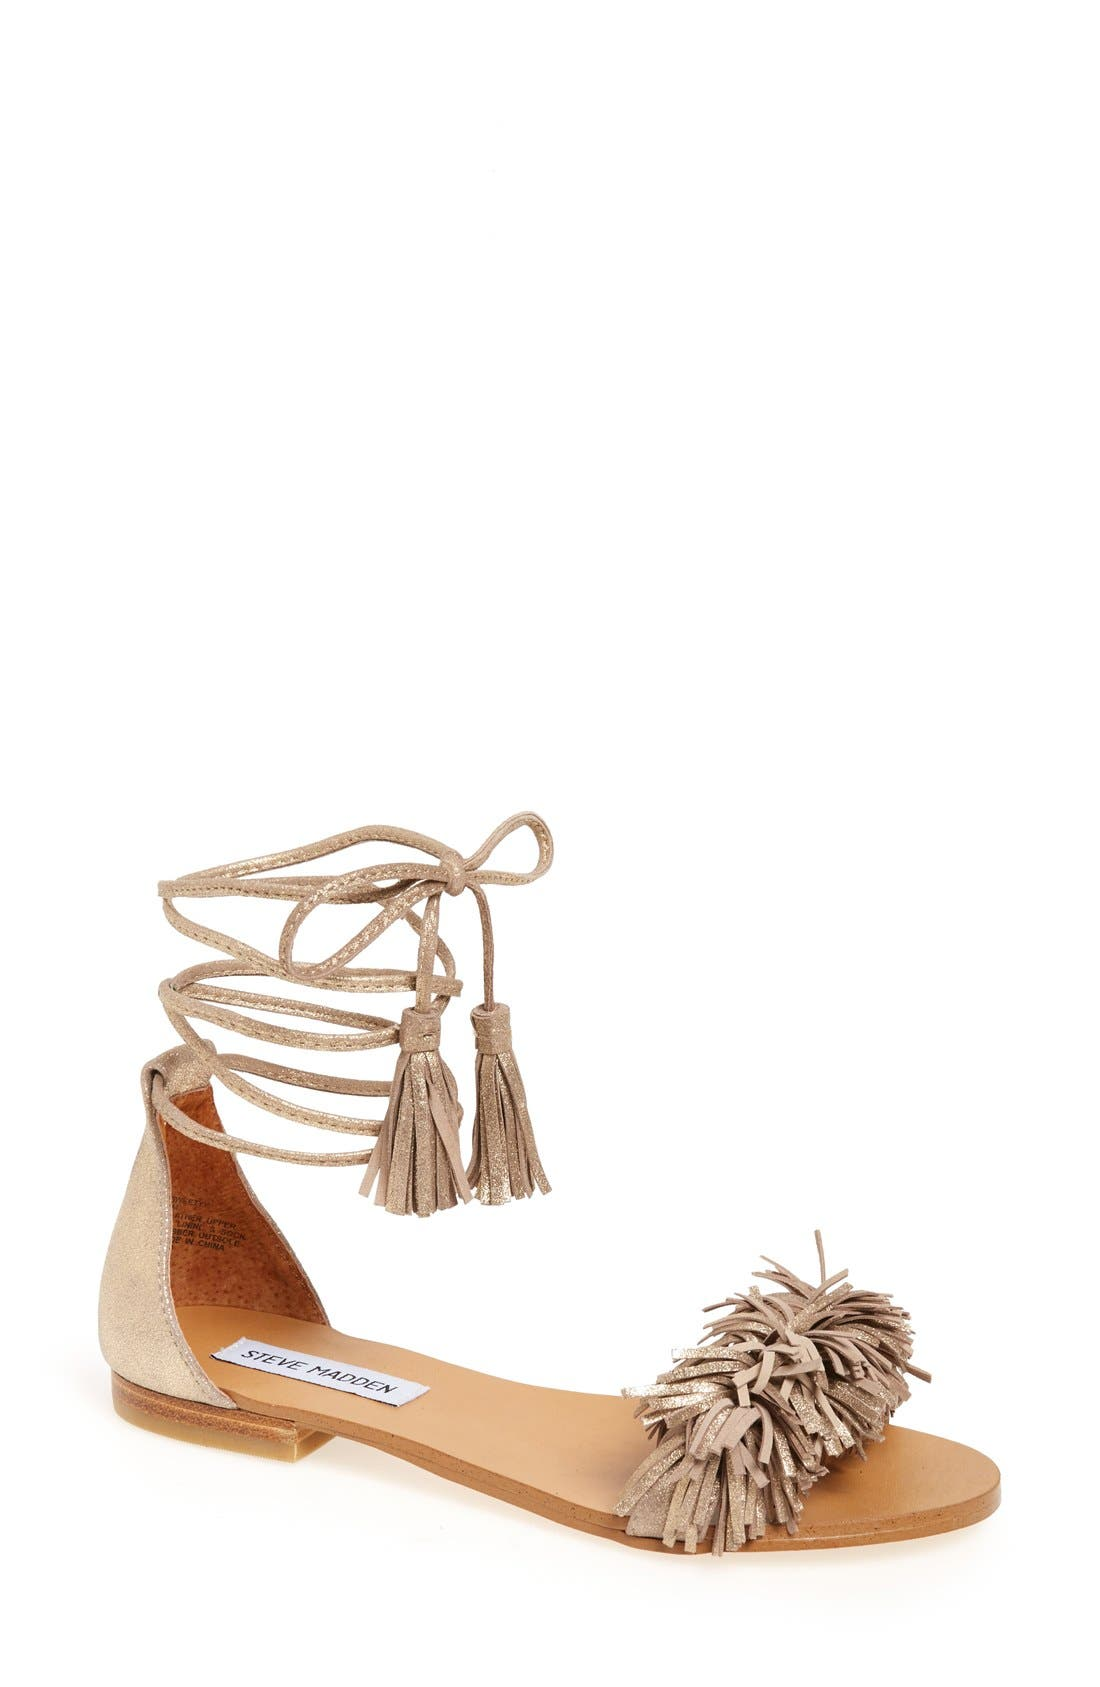 Alternate Image 1 Selected - Steve Madden 'Sweetyy' Lace-Up Sandal (Women)